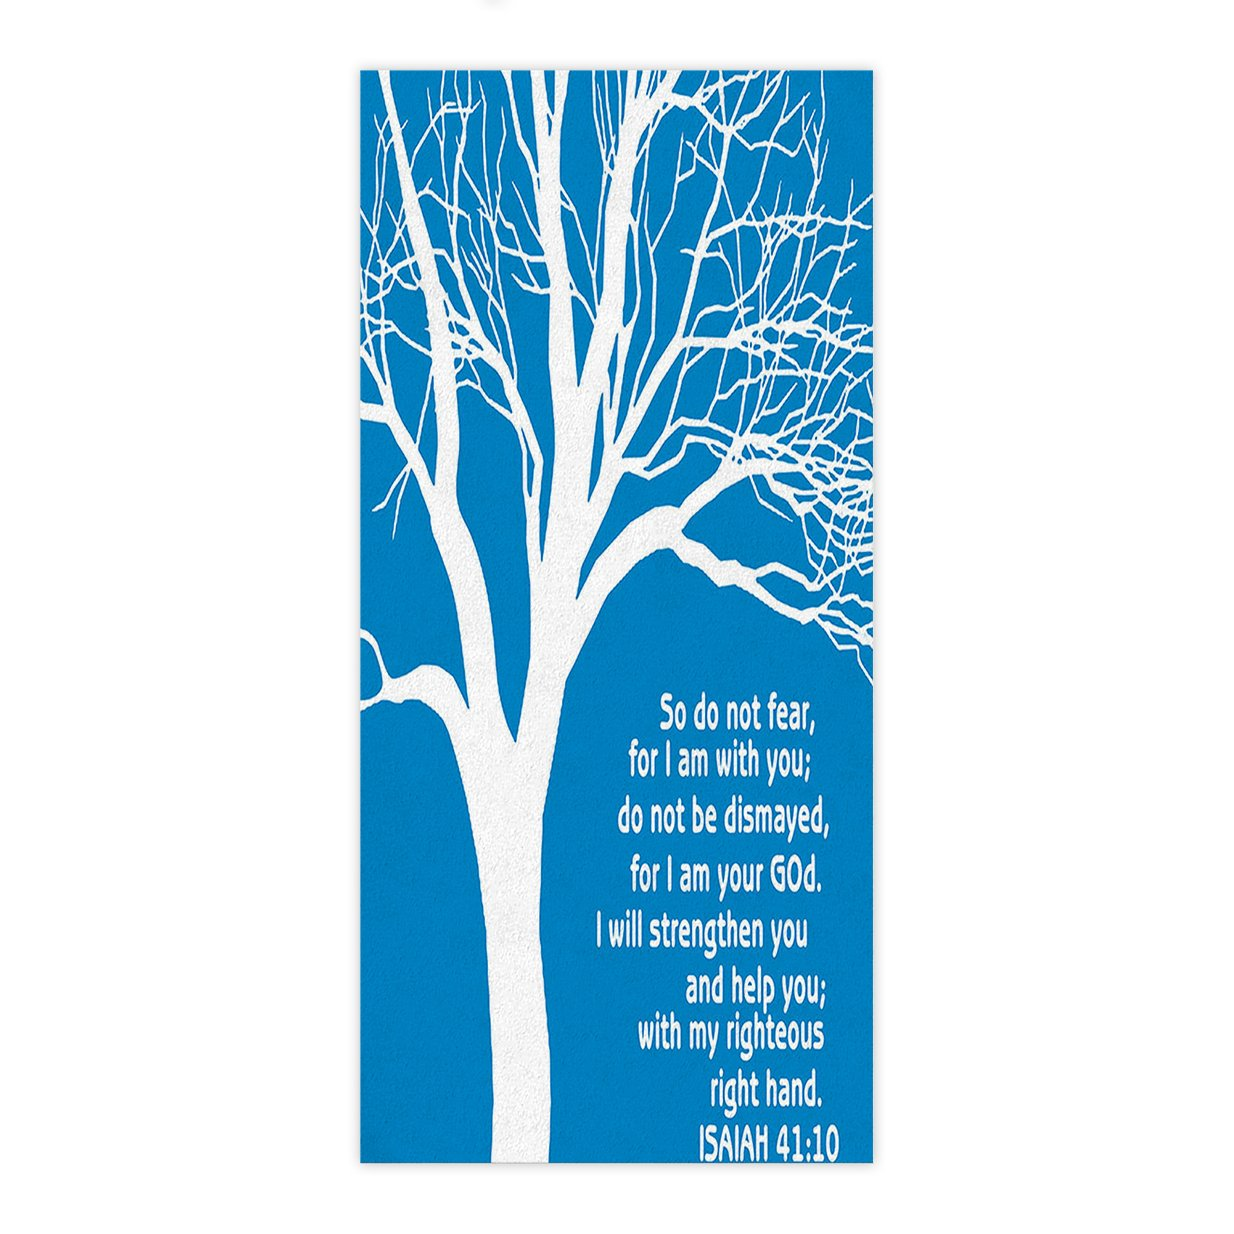 Crystal Emotion Christian Bible Verses Scriptures Ecclesiastes Quotes with Nature Tree of Life,Beach Towel Bath Towel Bathroom Shower Towel Bath Wrap For Body,Gym,Spa,Home,Hotel Use